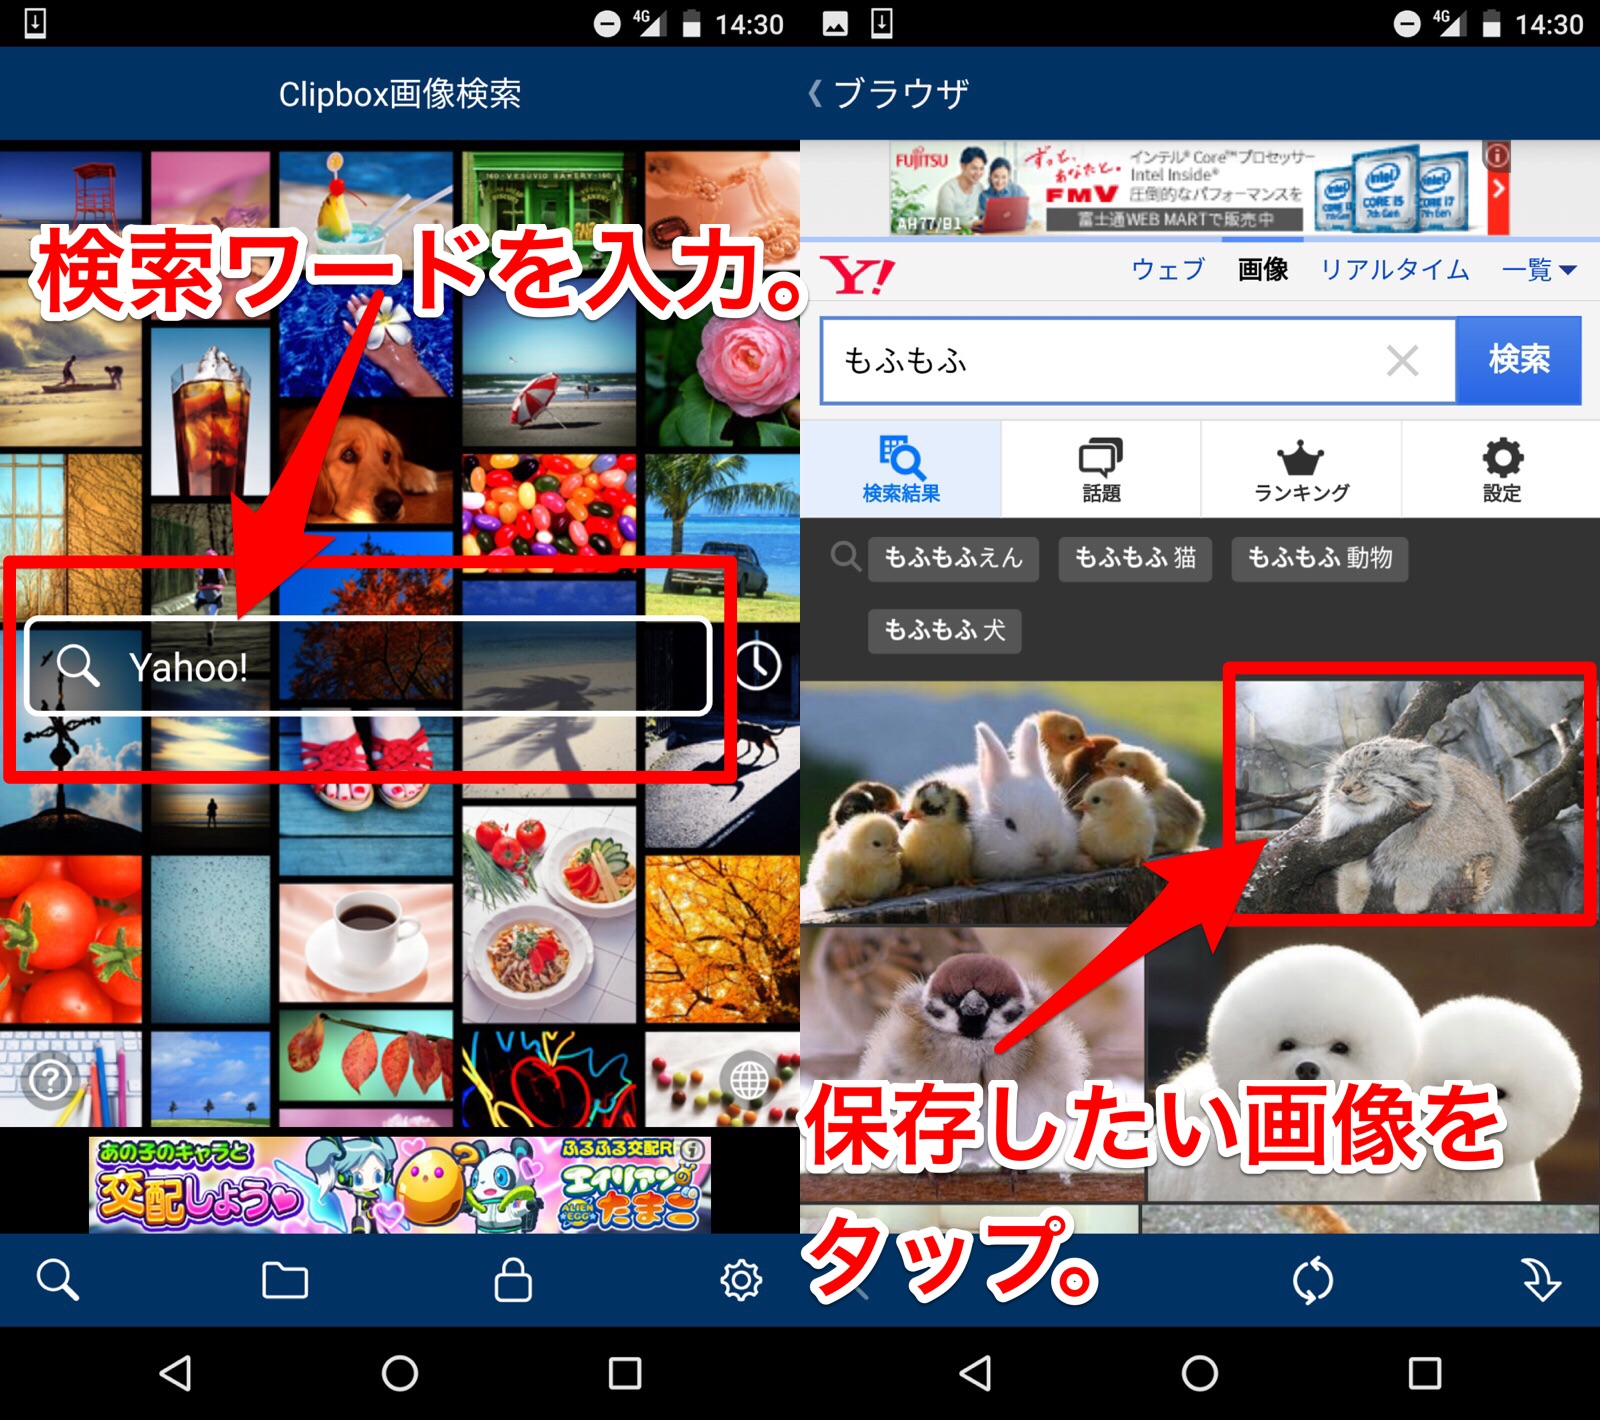 Androidの画像検索保存方法